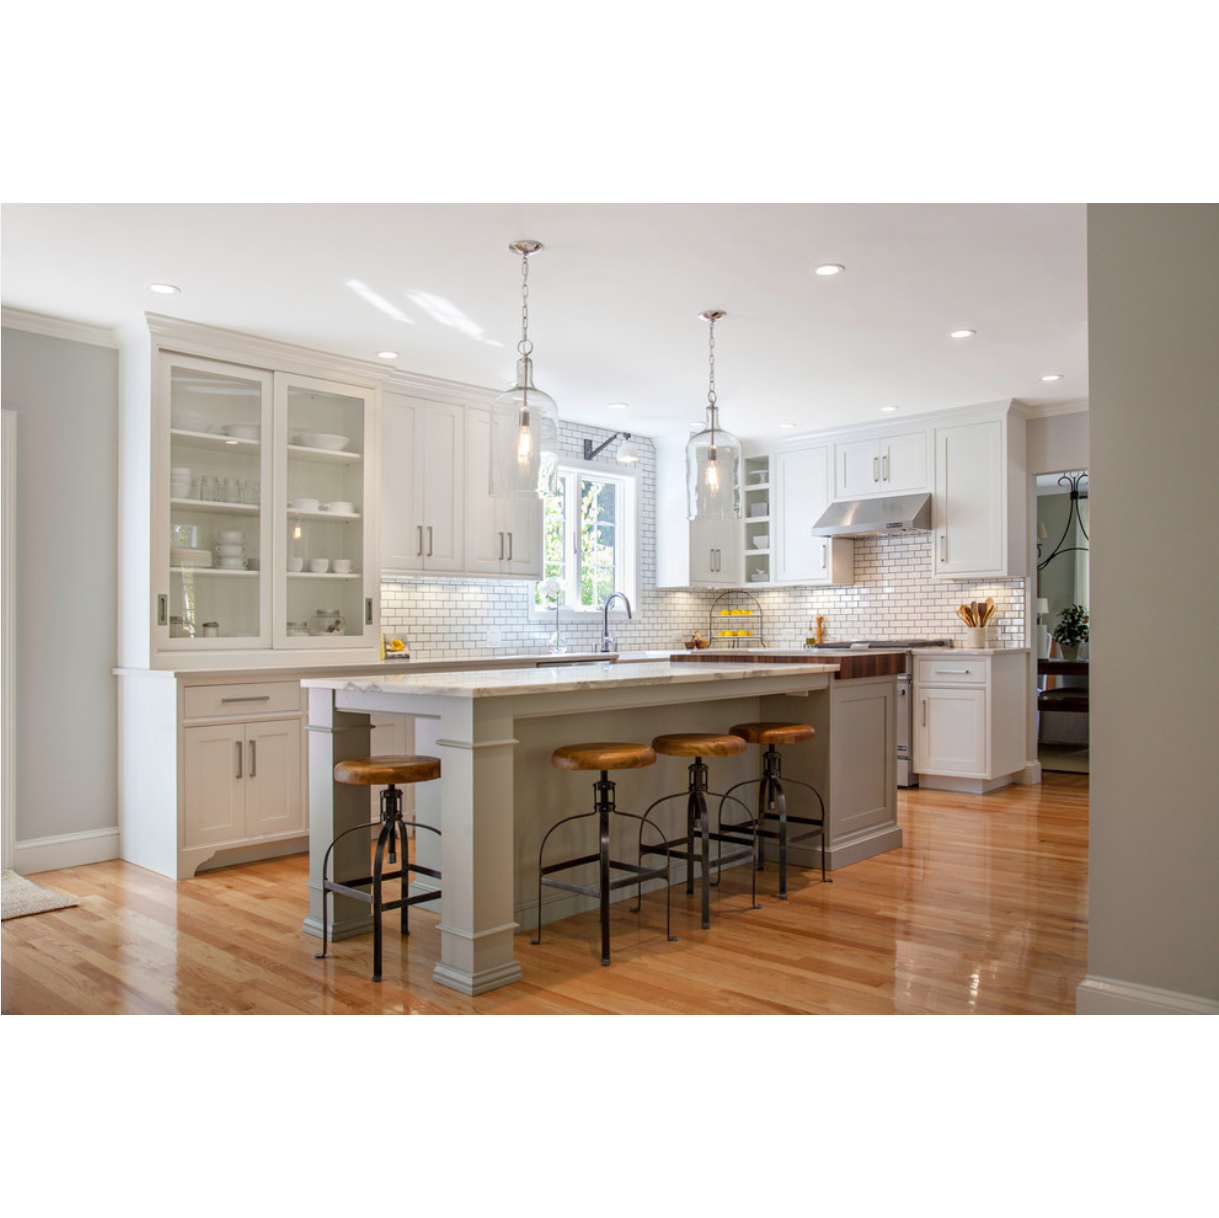 AisDecor cheap white shaker kitchen cabinets one-stop services-2